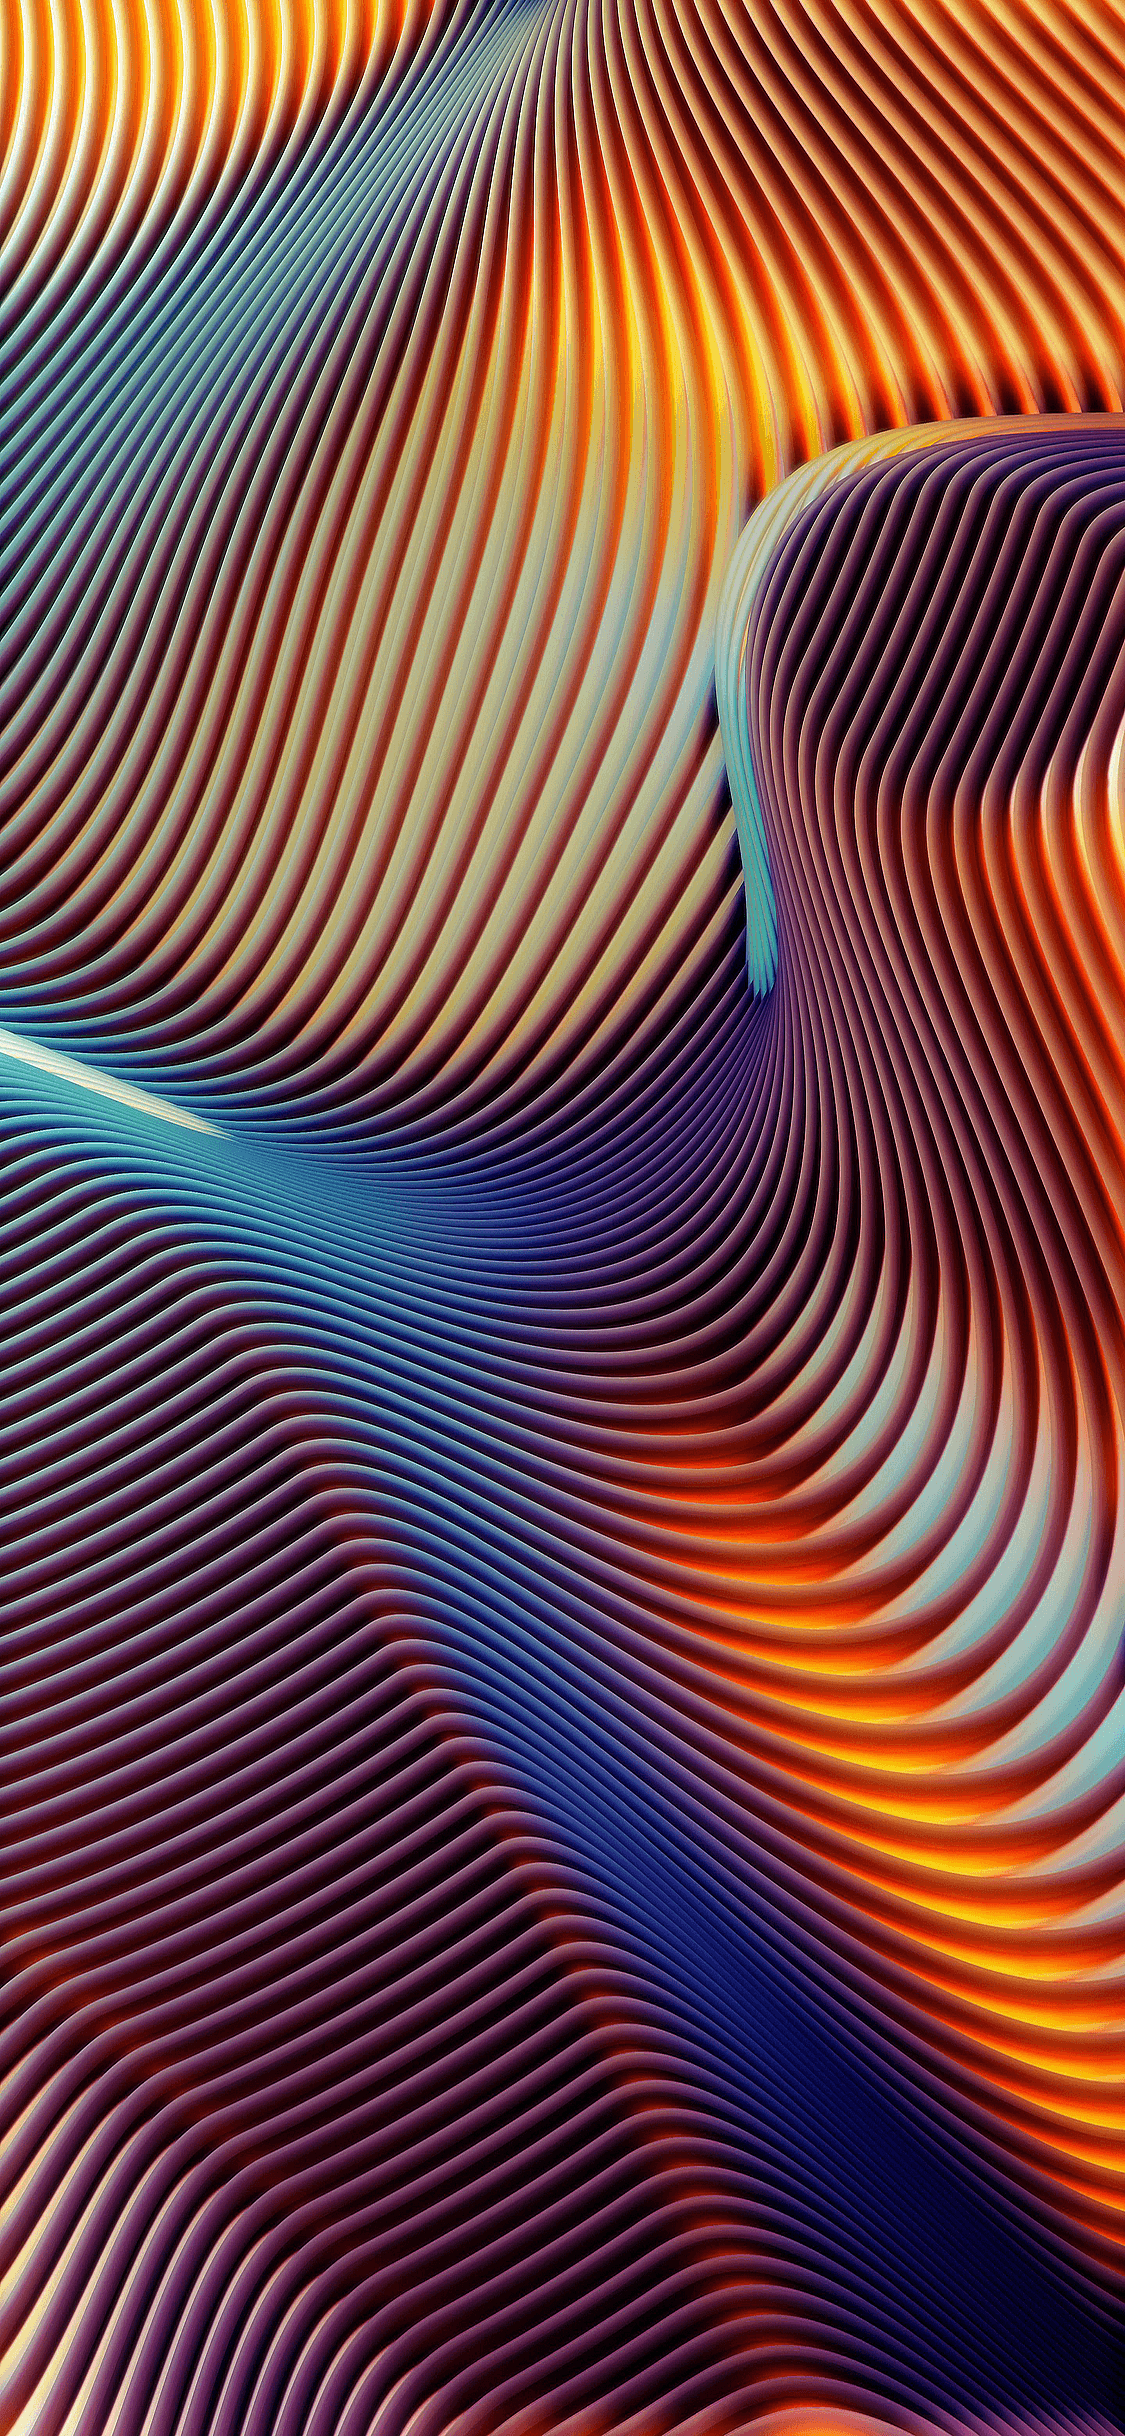 IOS 13 Official Wallpapers - Wallpaper Cave